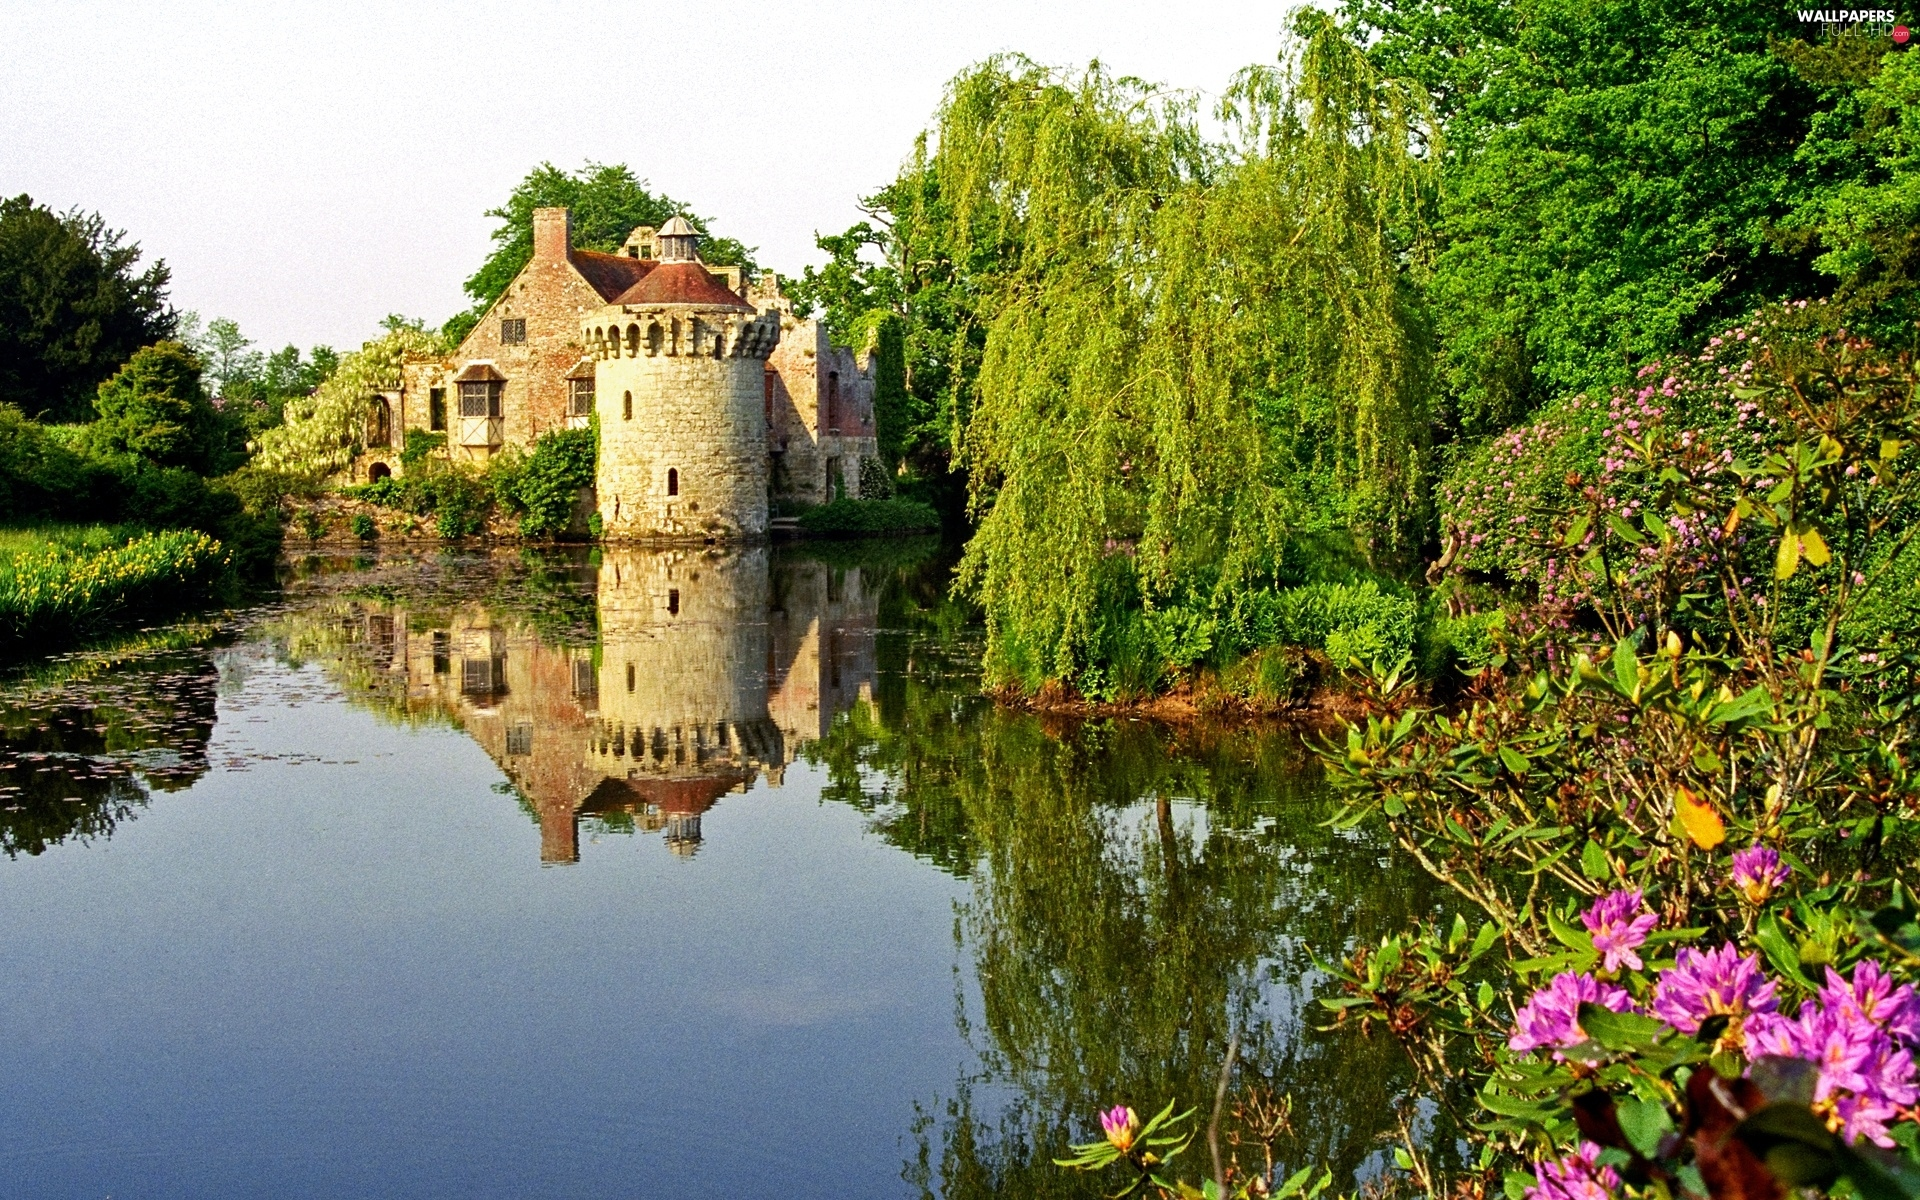 England, viewes, trees, Castle, Kent, lake, Flowers